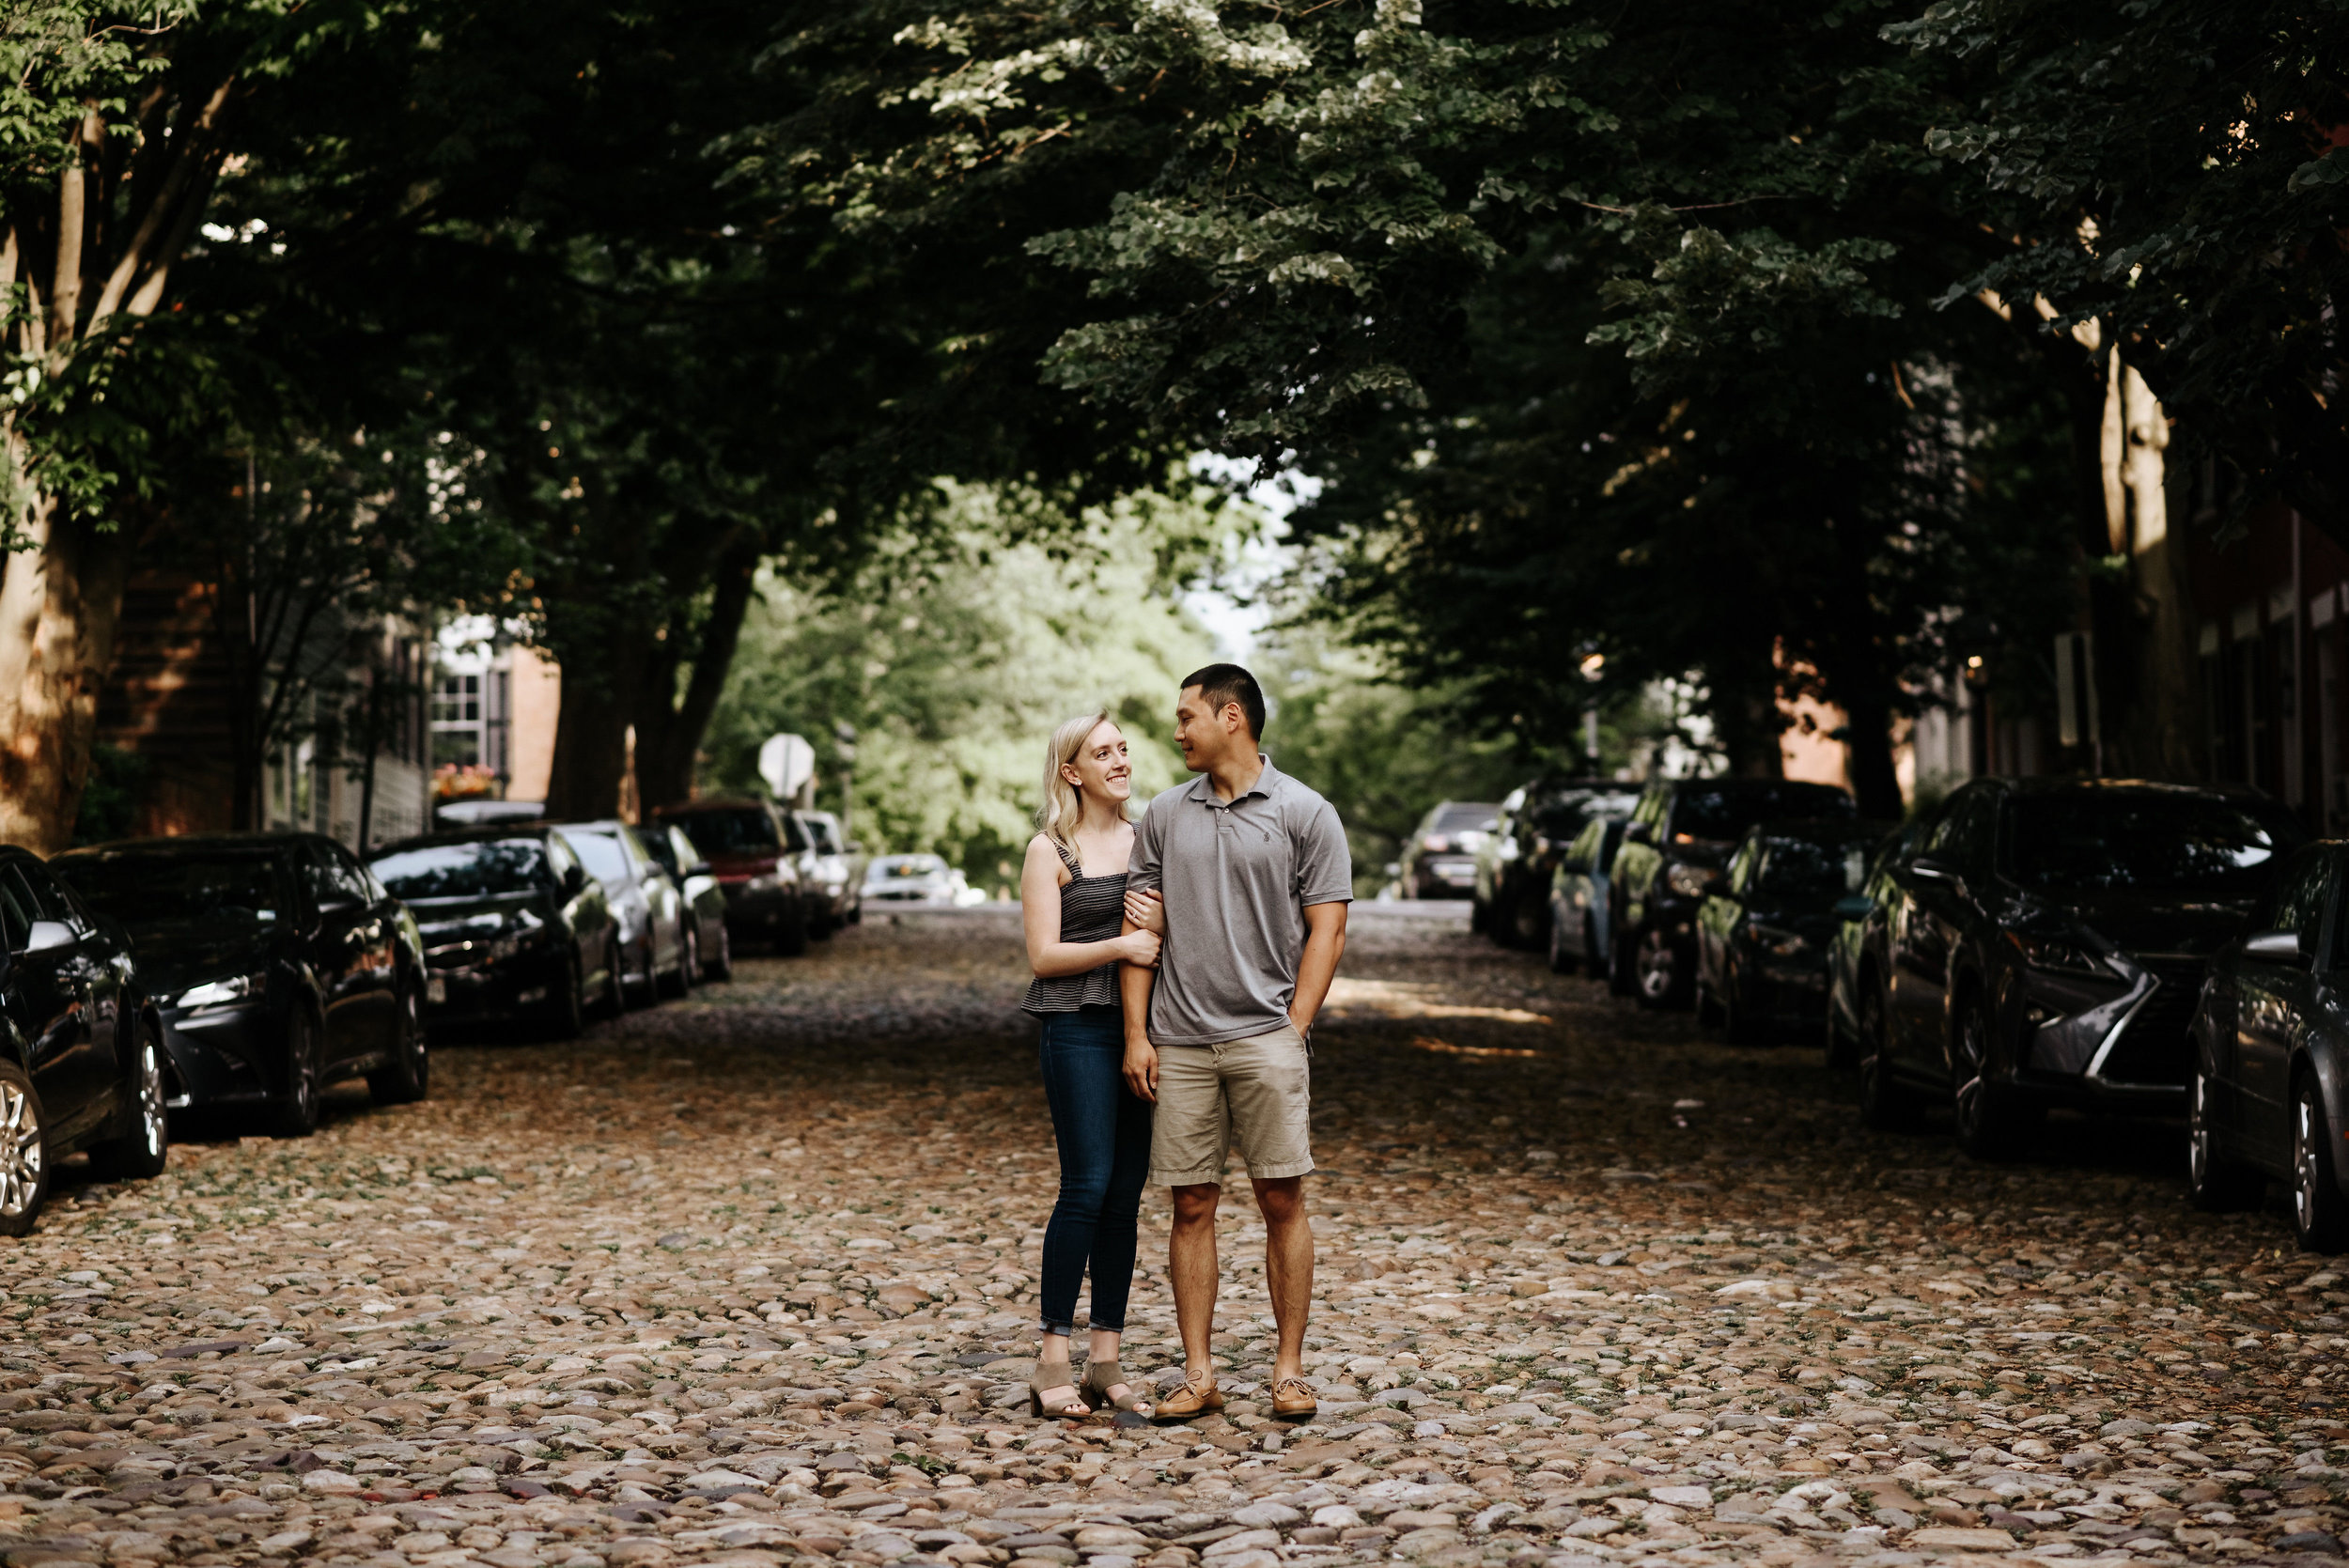 Bella_Alec_Old_Town_Alexandria_Engagement_Session_Photography_by_V_5721.jpg